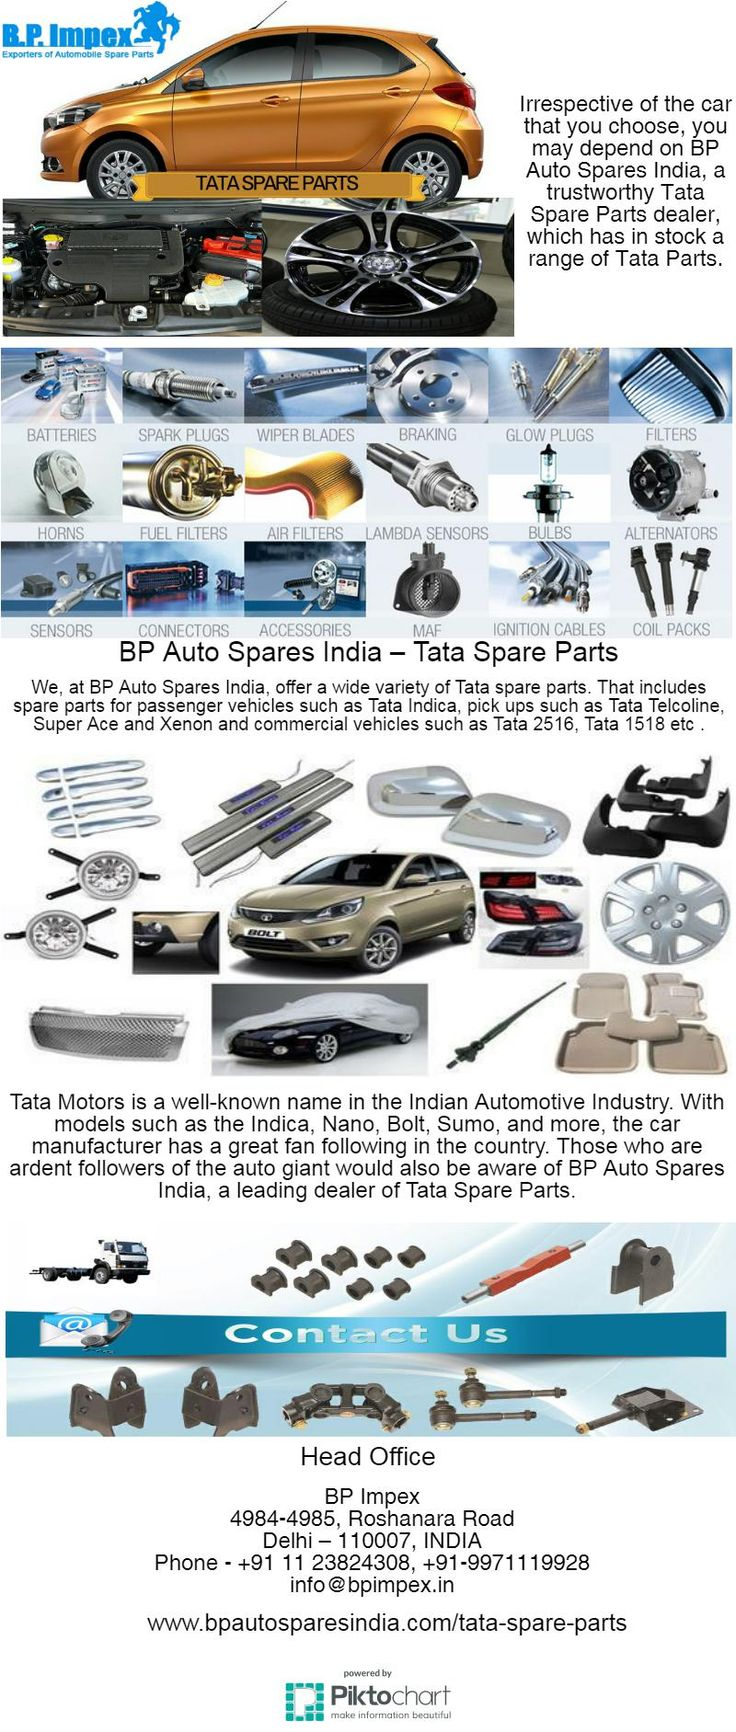 Tata Motors is a well-known name in the Indian Automotive Industry. With models such as the Indica, Nano, Bolt, Sumo, and more, the car manufacturer has a great fan following in the country. Those who are ardent followers of the auto giant would also be aware of BP Auto Spares India, a leading dealer of Tata Spare Parts.